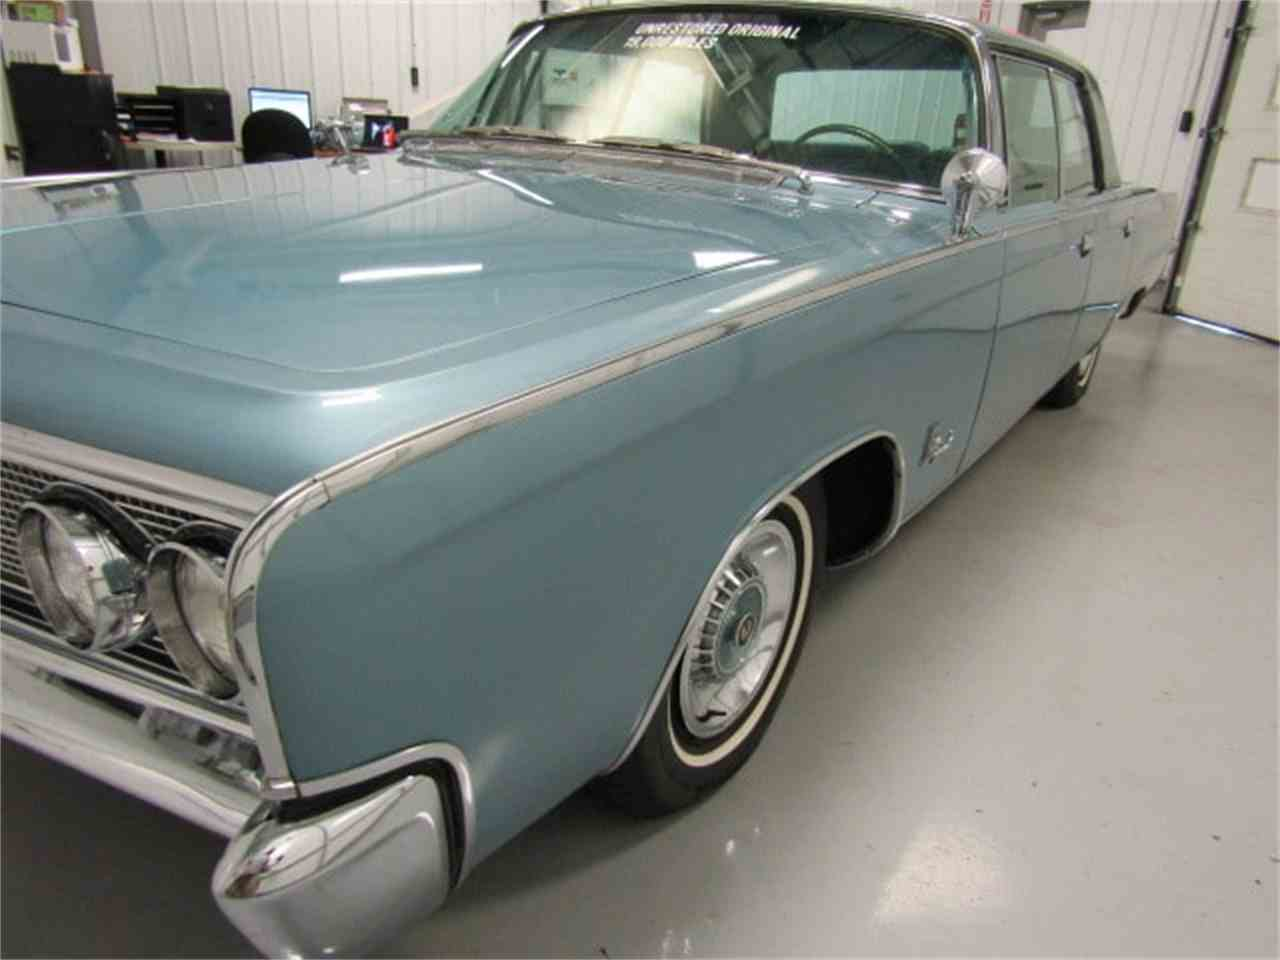 Large Picture of Classic 1964 Chrysler Imperial located in Christiansburg Virginia - $21,970.00 Offered by Duncan Imports & Classic Cars - JLDR